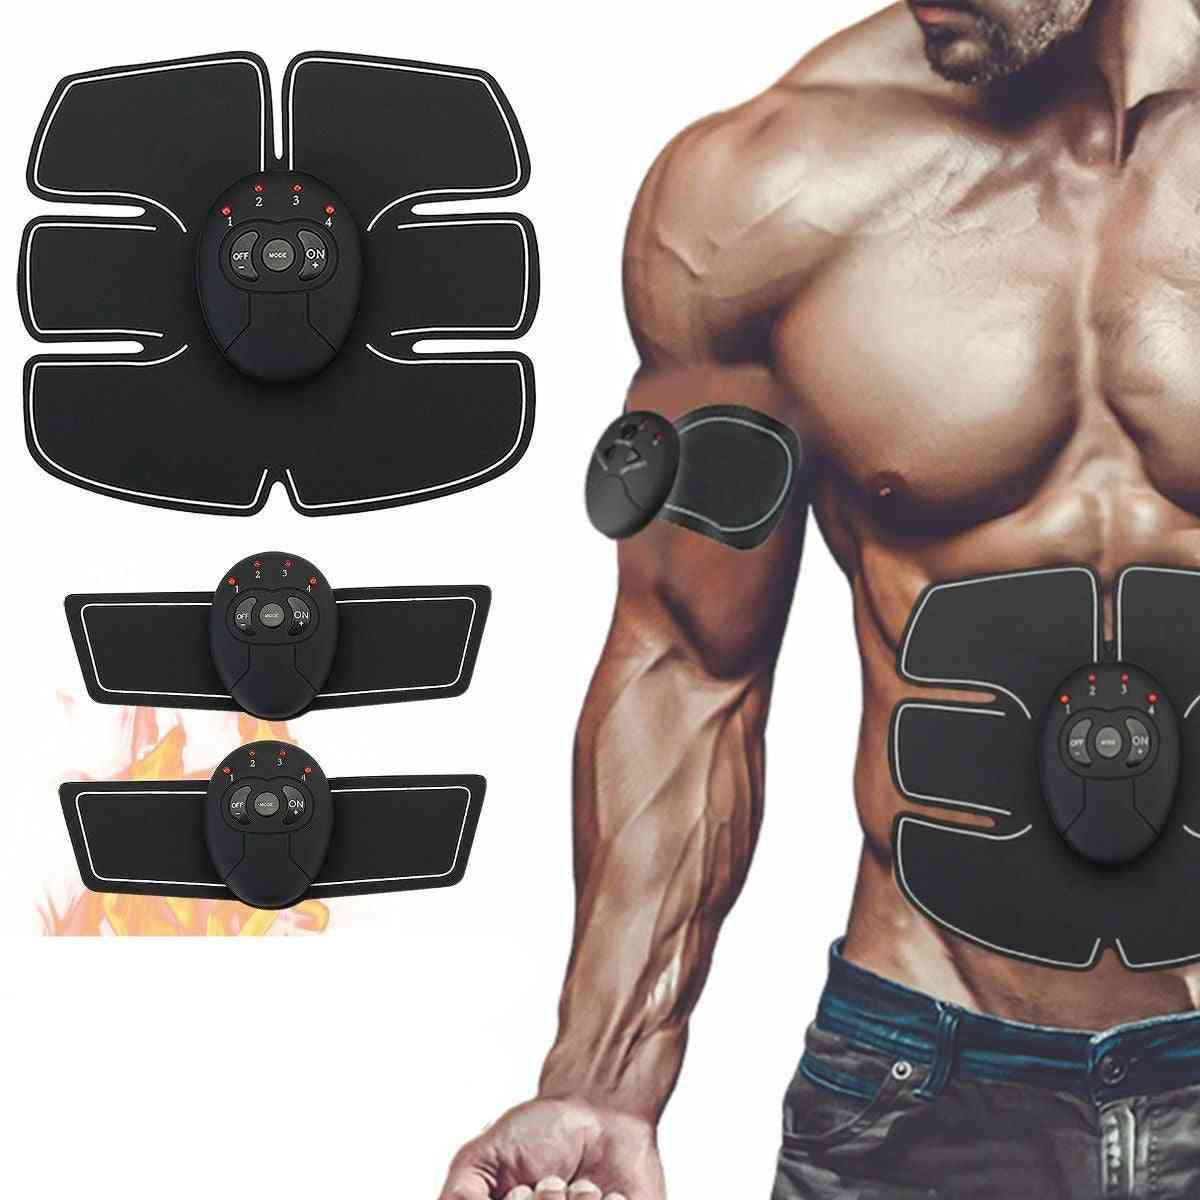 Ems Hip Muscle Stimulator Fitness Buttock Abdominal Trainer Sp